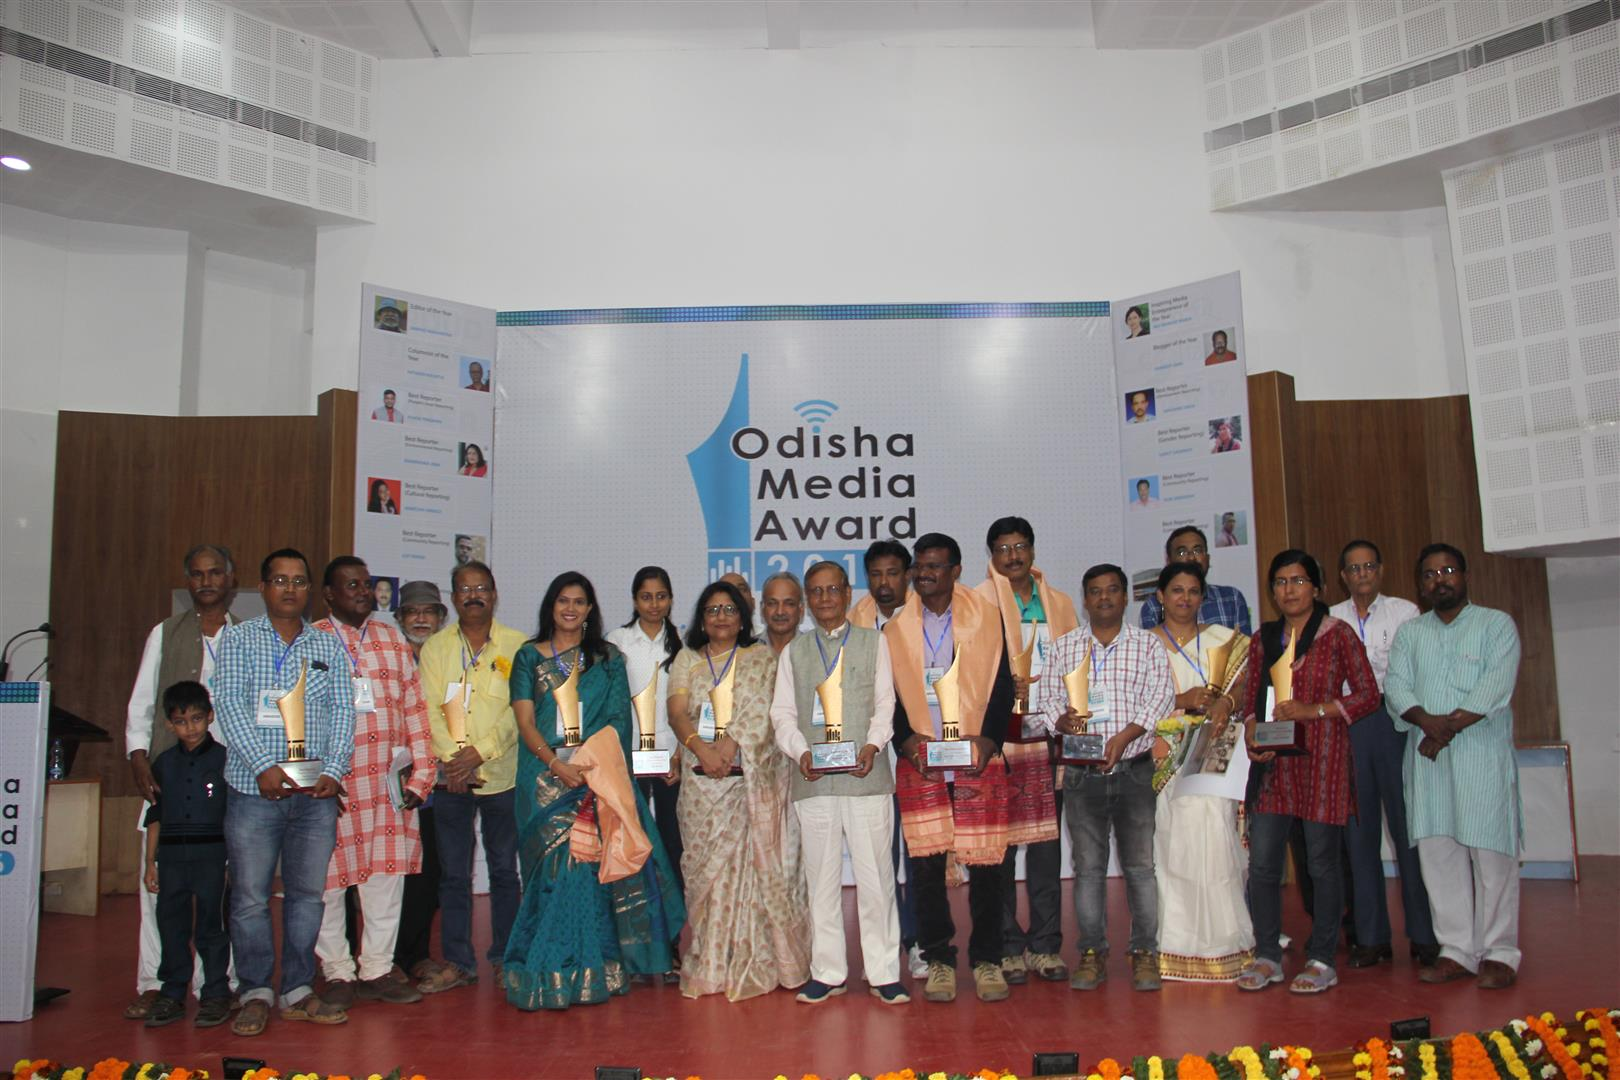 Odisha Media Award 2016 held, Journalists and media professionals committed to people's issues honoured